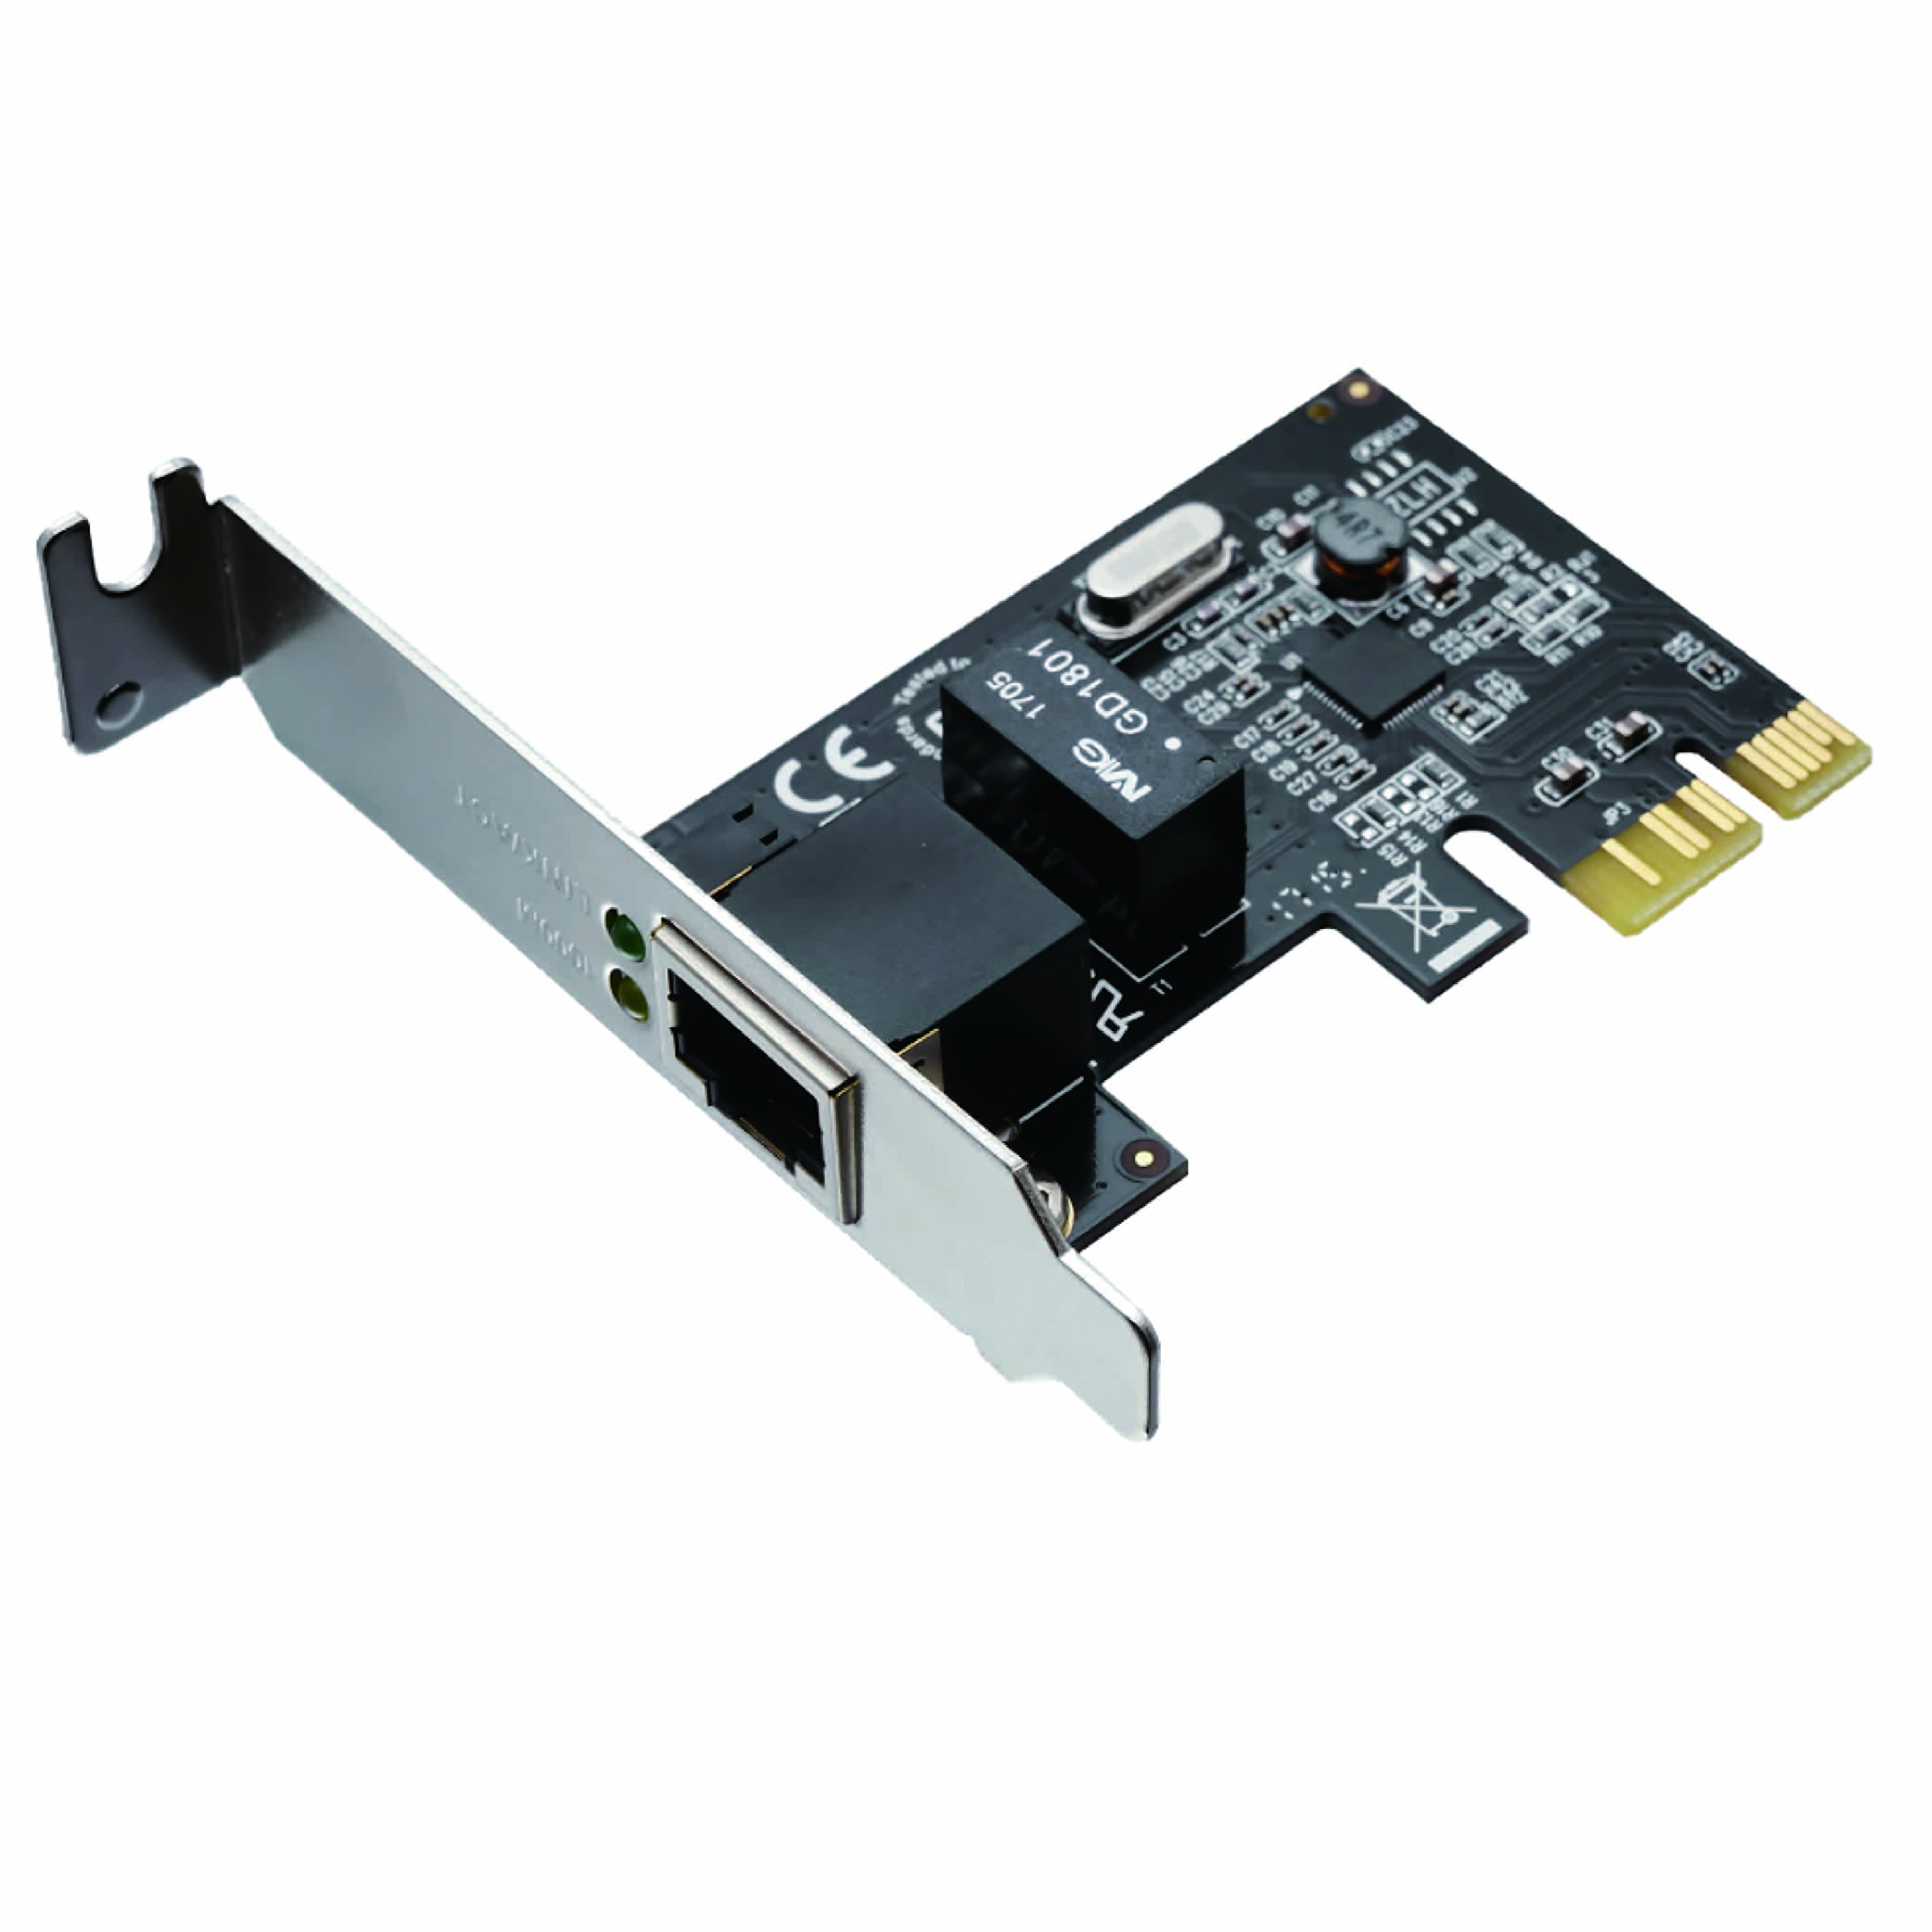 Airier SD-PEGLAN-1L Gino III The PCI Express x 1 Connection Gigabit LAN Expansion Low Profile Support by Airier (Image #8)